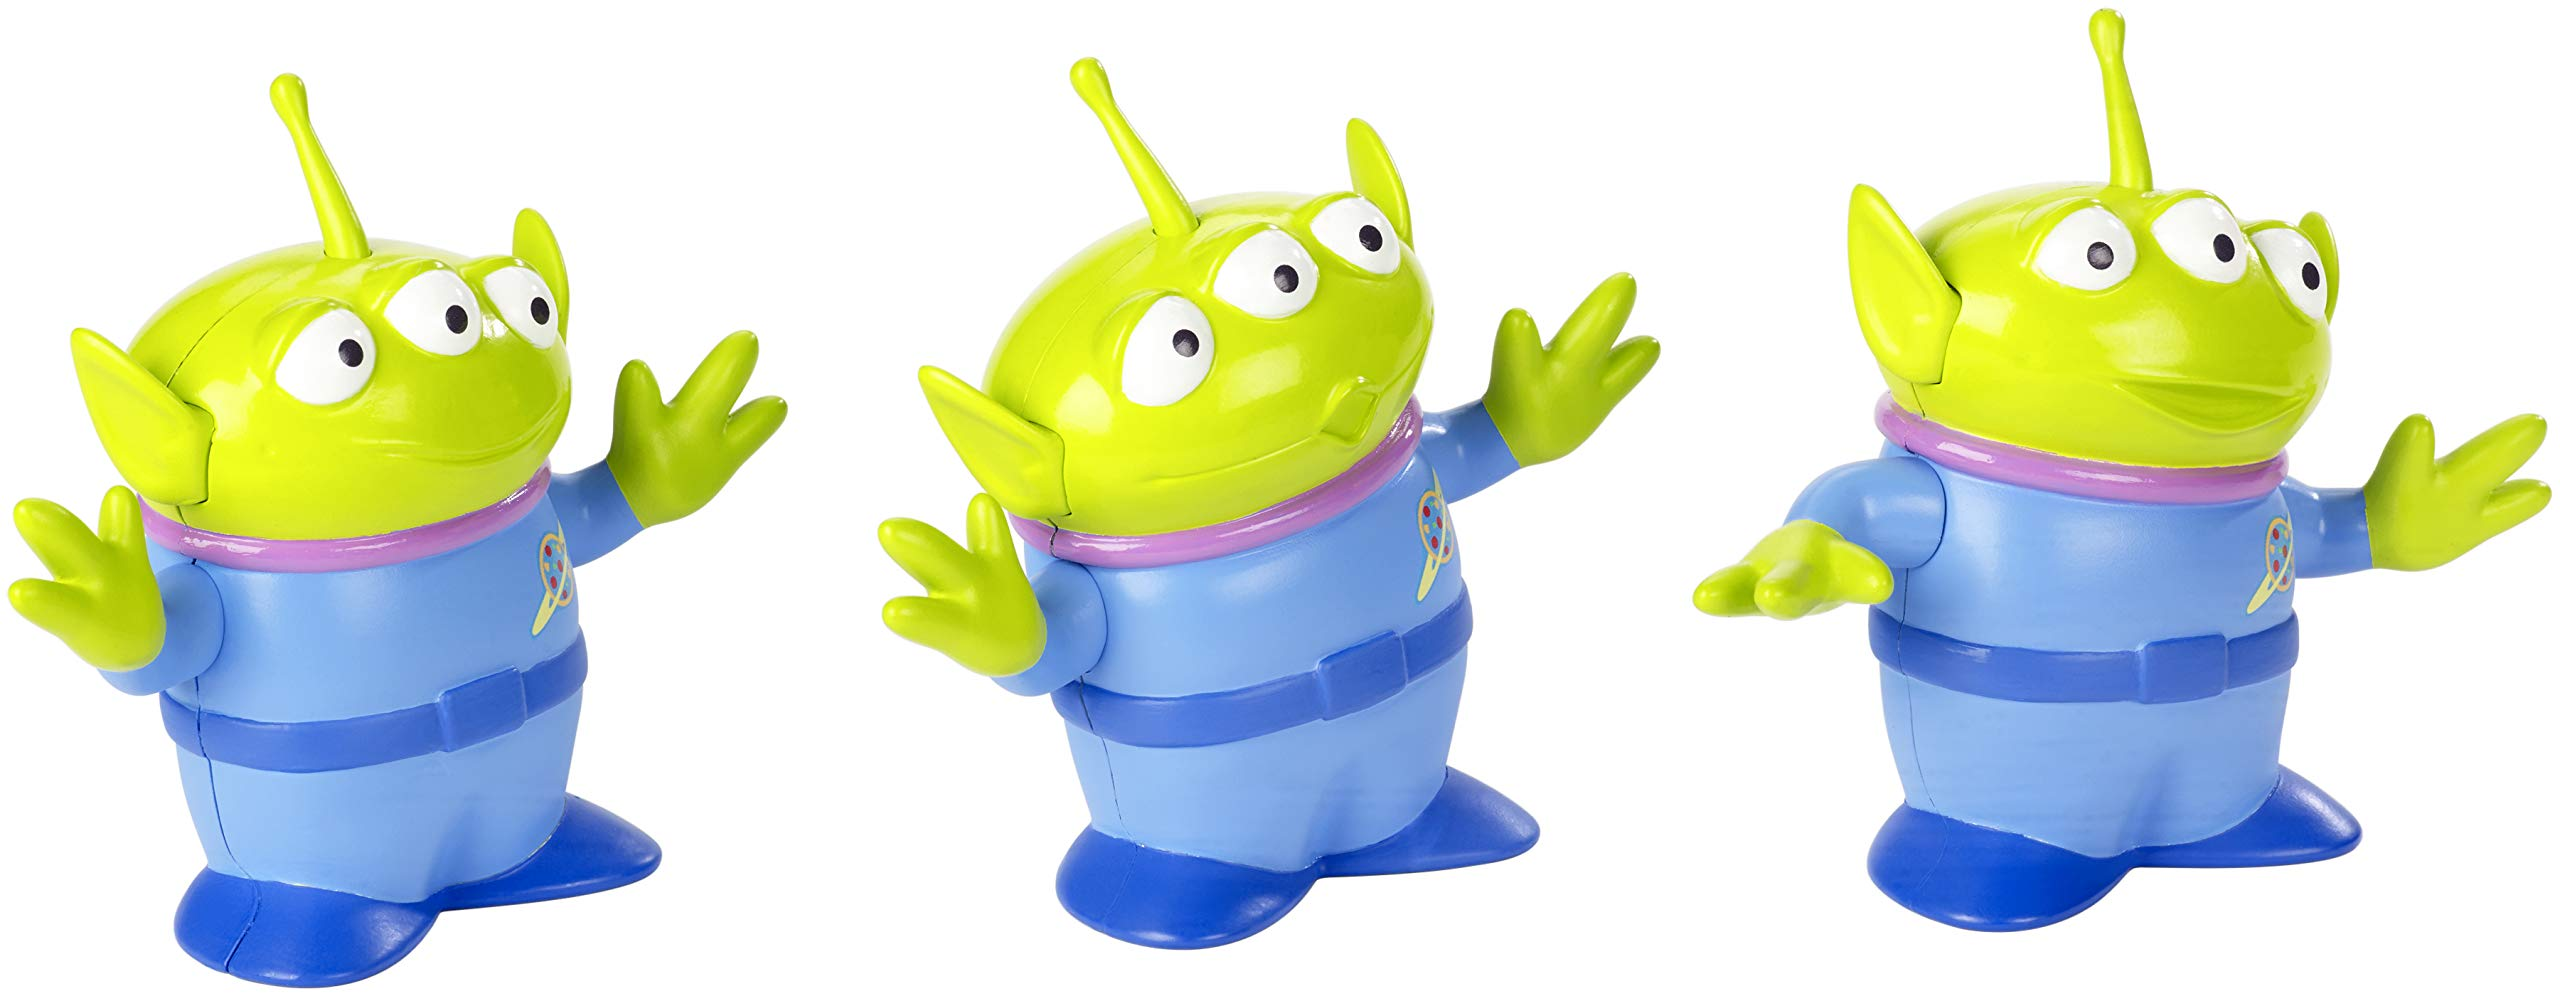 Disney Pixar Toy Story 4 Aliens Figures 4.4 in / 11.18 cm Tall 3 Posable Character Figures for Kids 3 Years and Older [Amazon Exclusive]